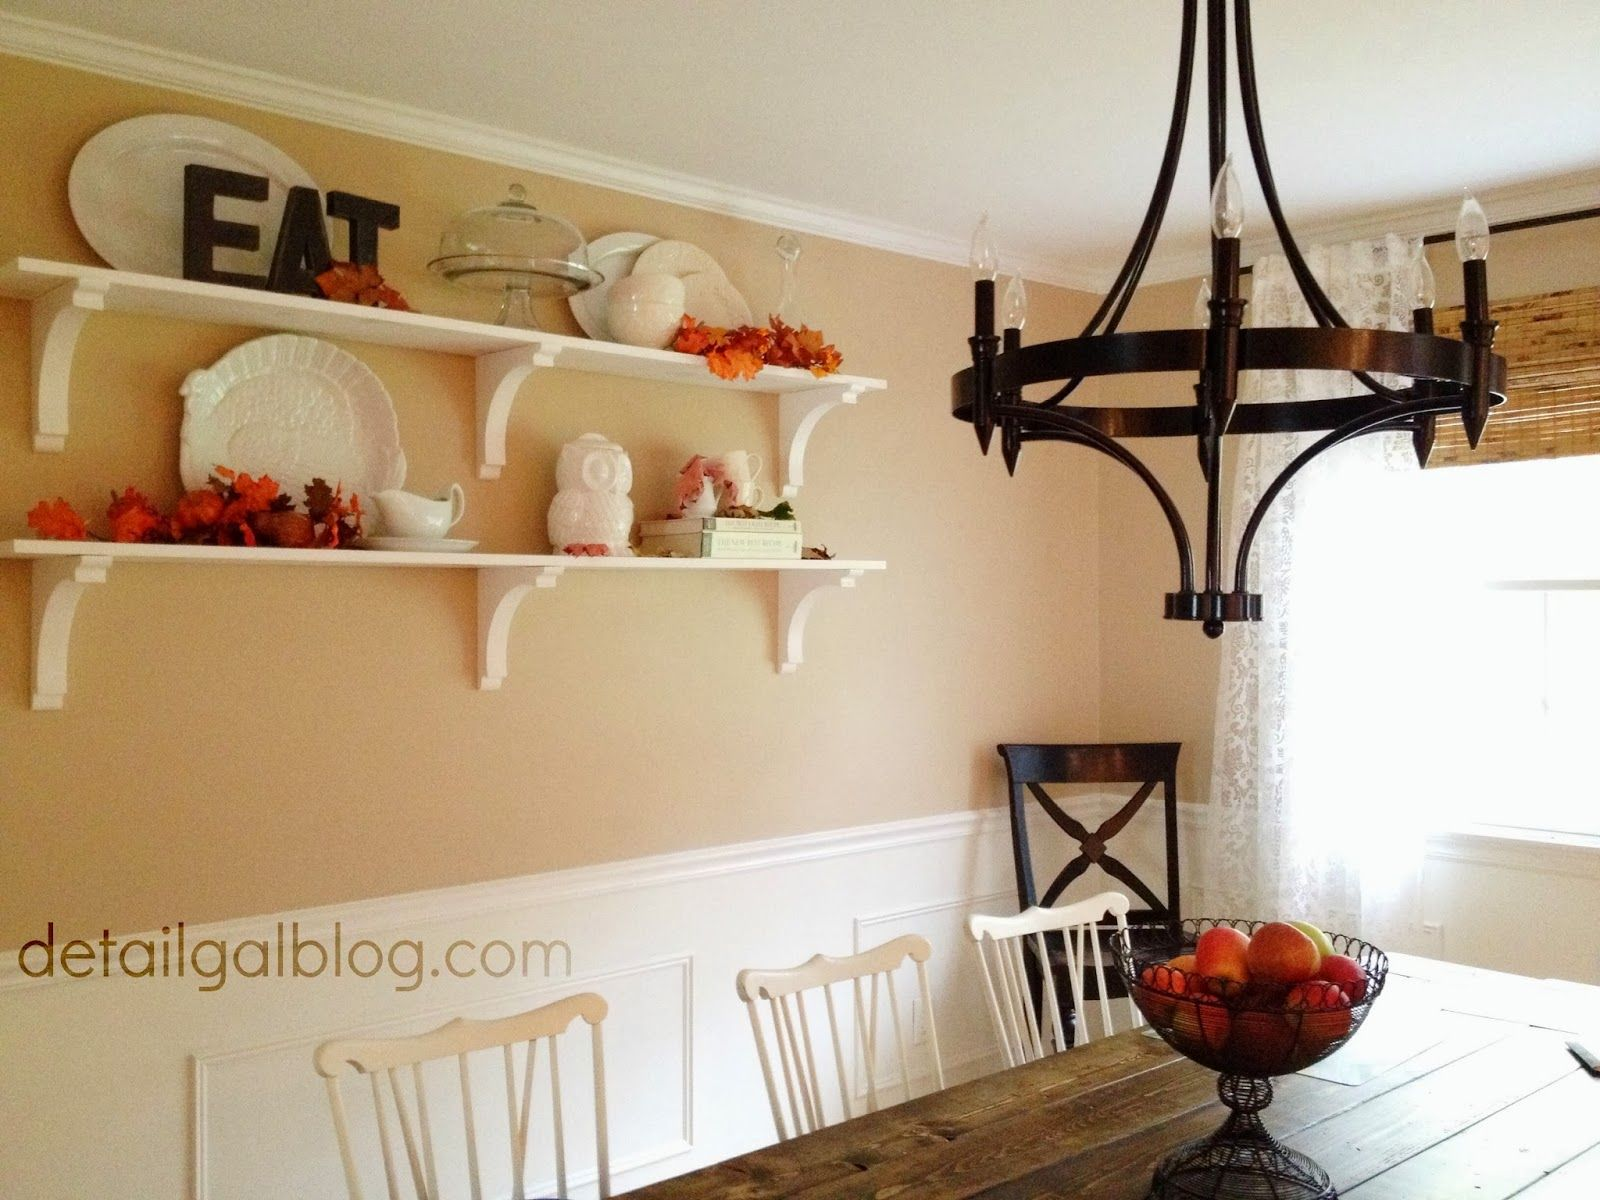 Dining Room Wall Shelves  Diy Shelves For $100  Dining Room Adorable Shelves Dining Room Design Inspiration